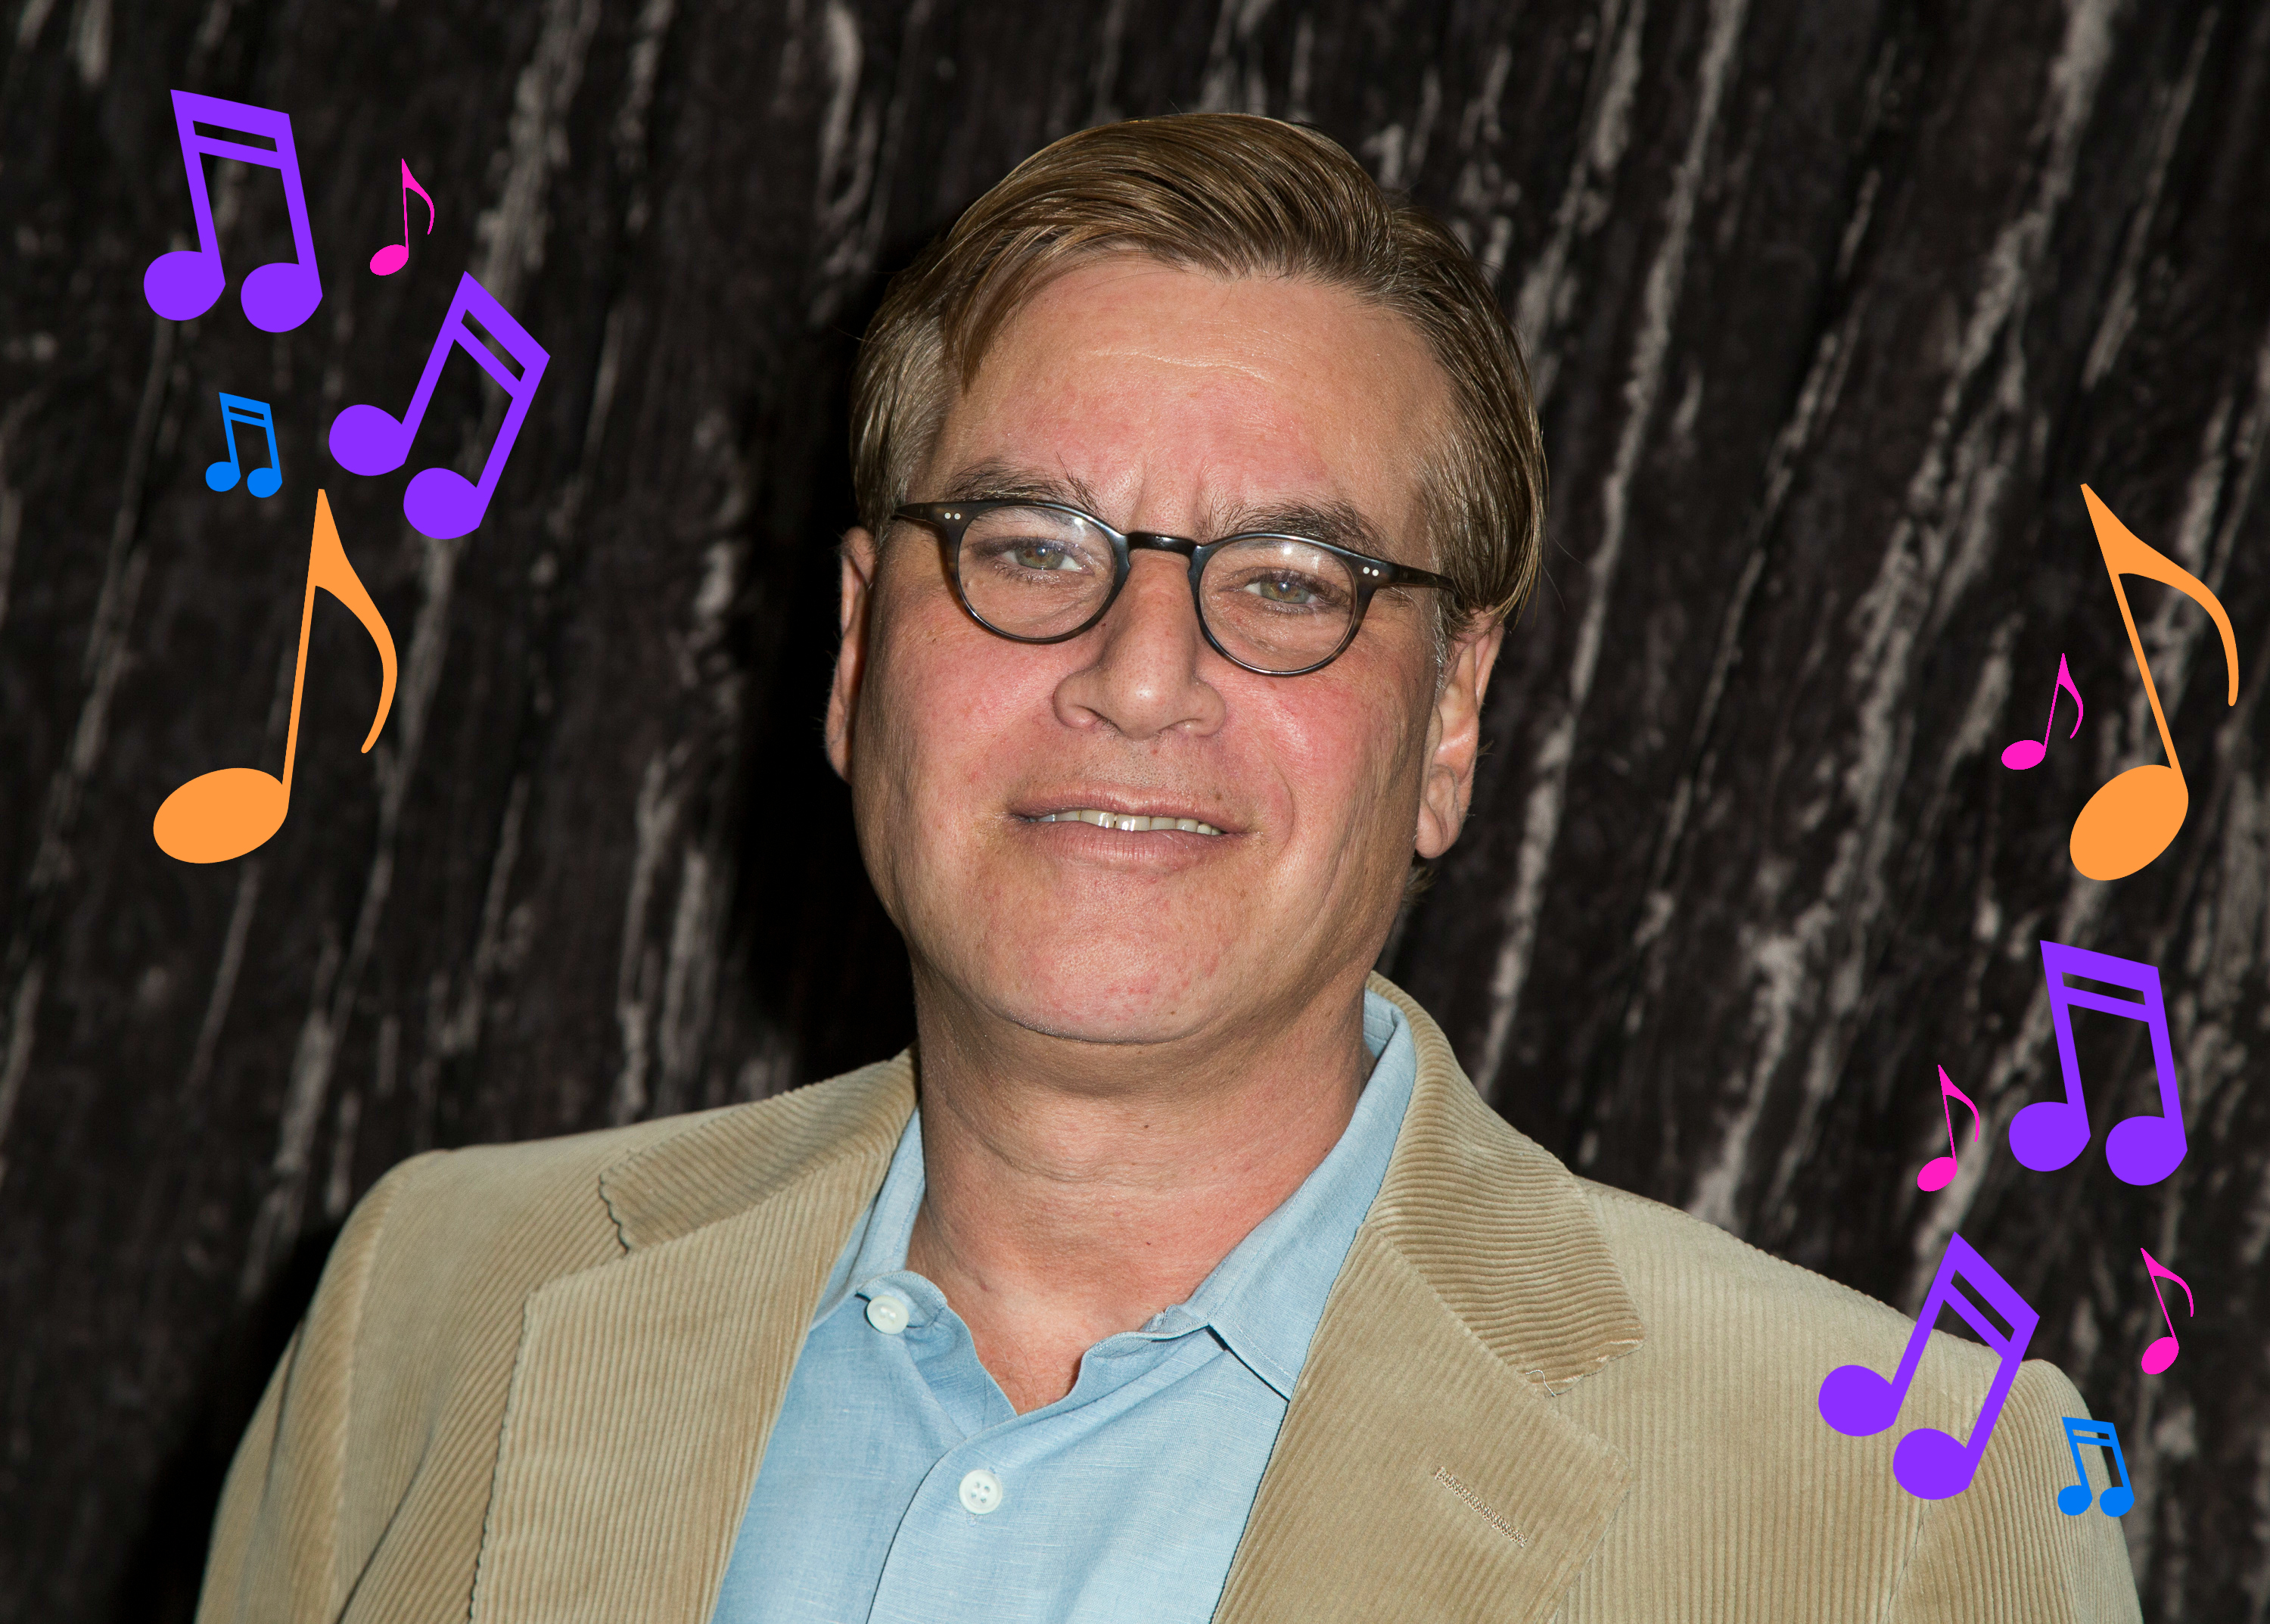 The Aaron Sorkin inspired playlist you've always wanted is finally here!